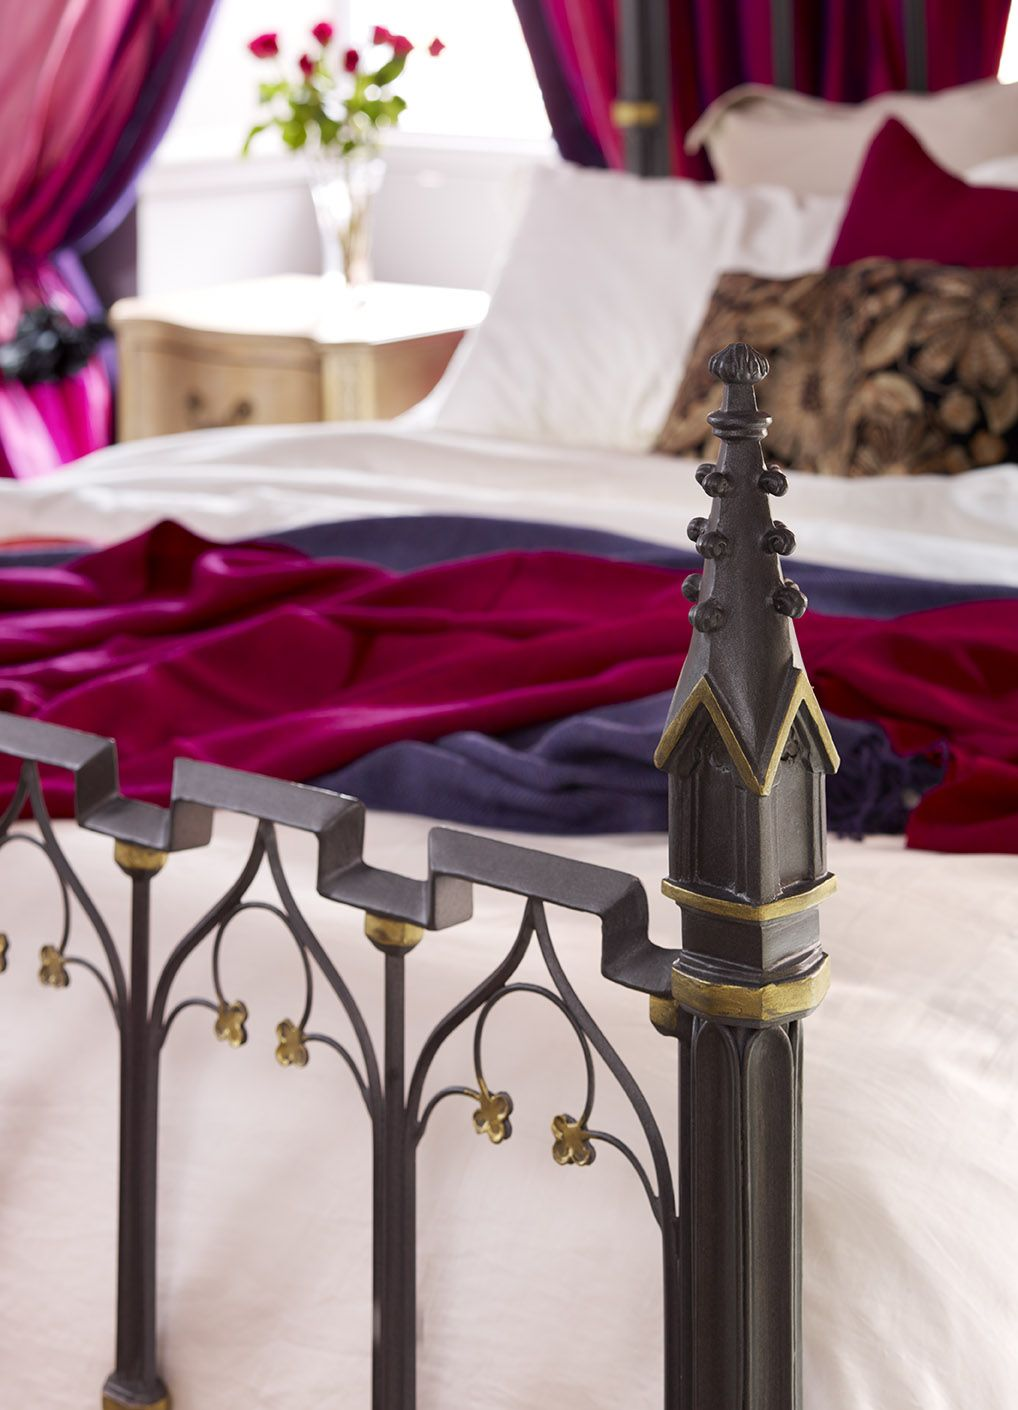 The Pugin Bed from And So To Bed. metal artistry